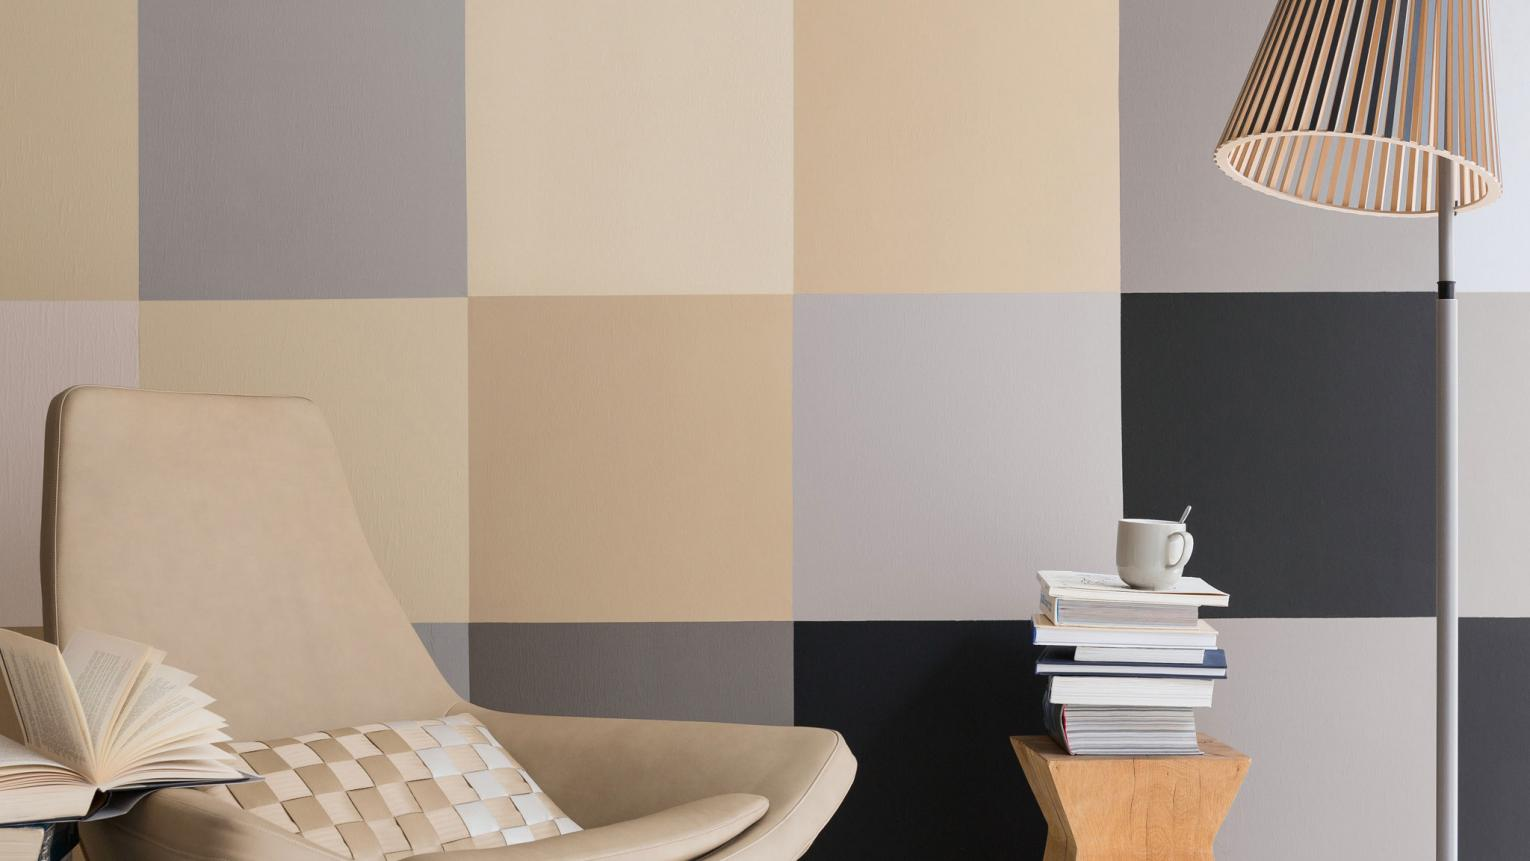 For a fresh twist on colour blocking, use contrasting neutrals to create a modern block pattern effect.